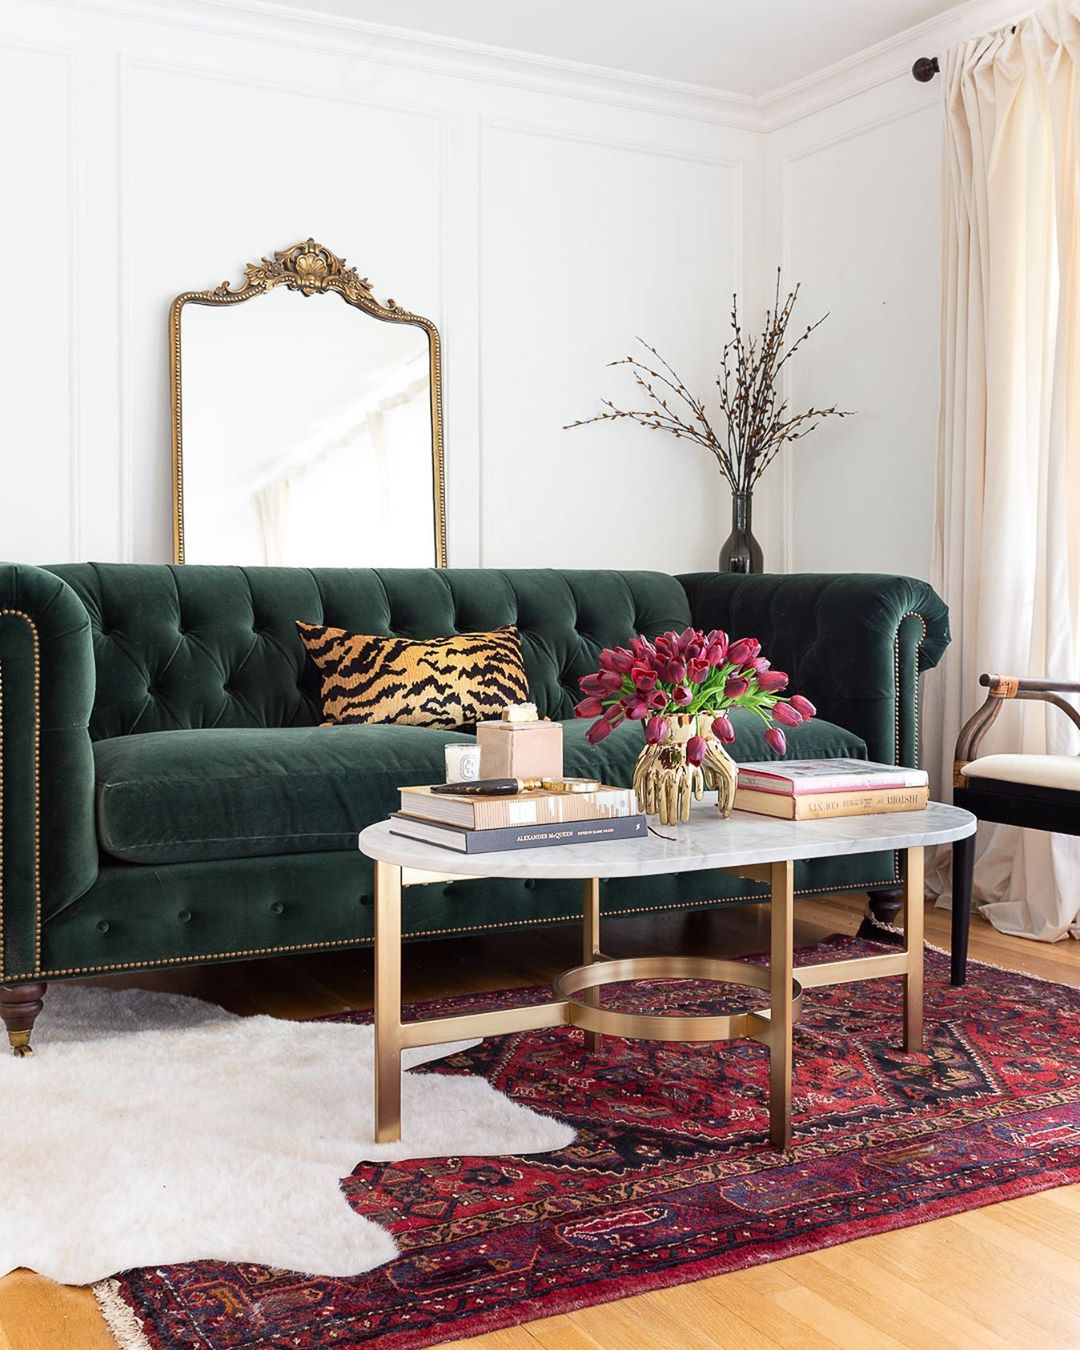 13 Glamorous Furniture Pieces to Remind You of Old Hollywood